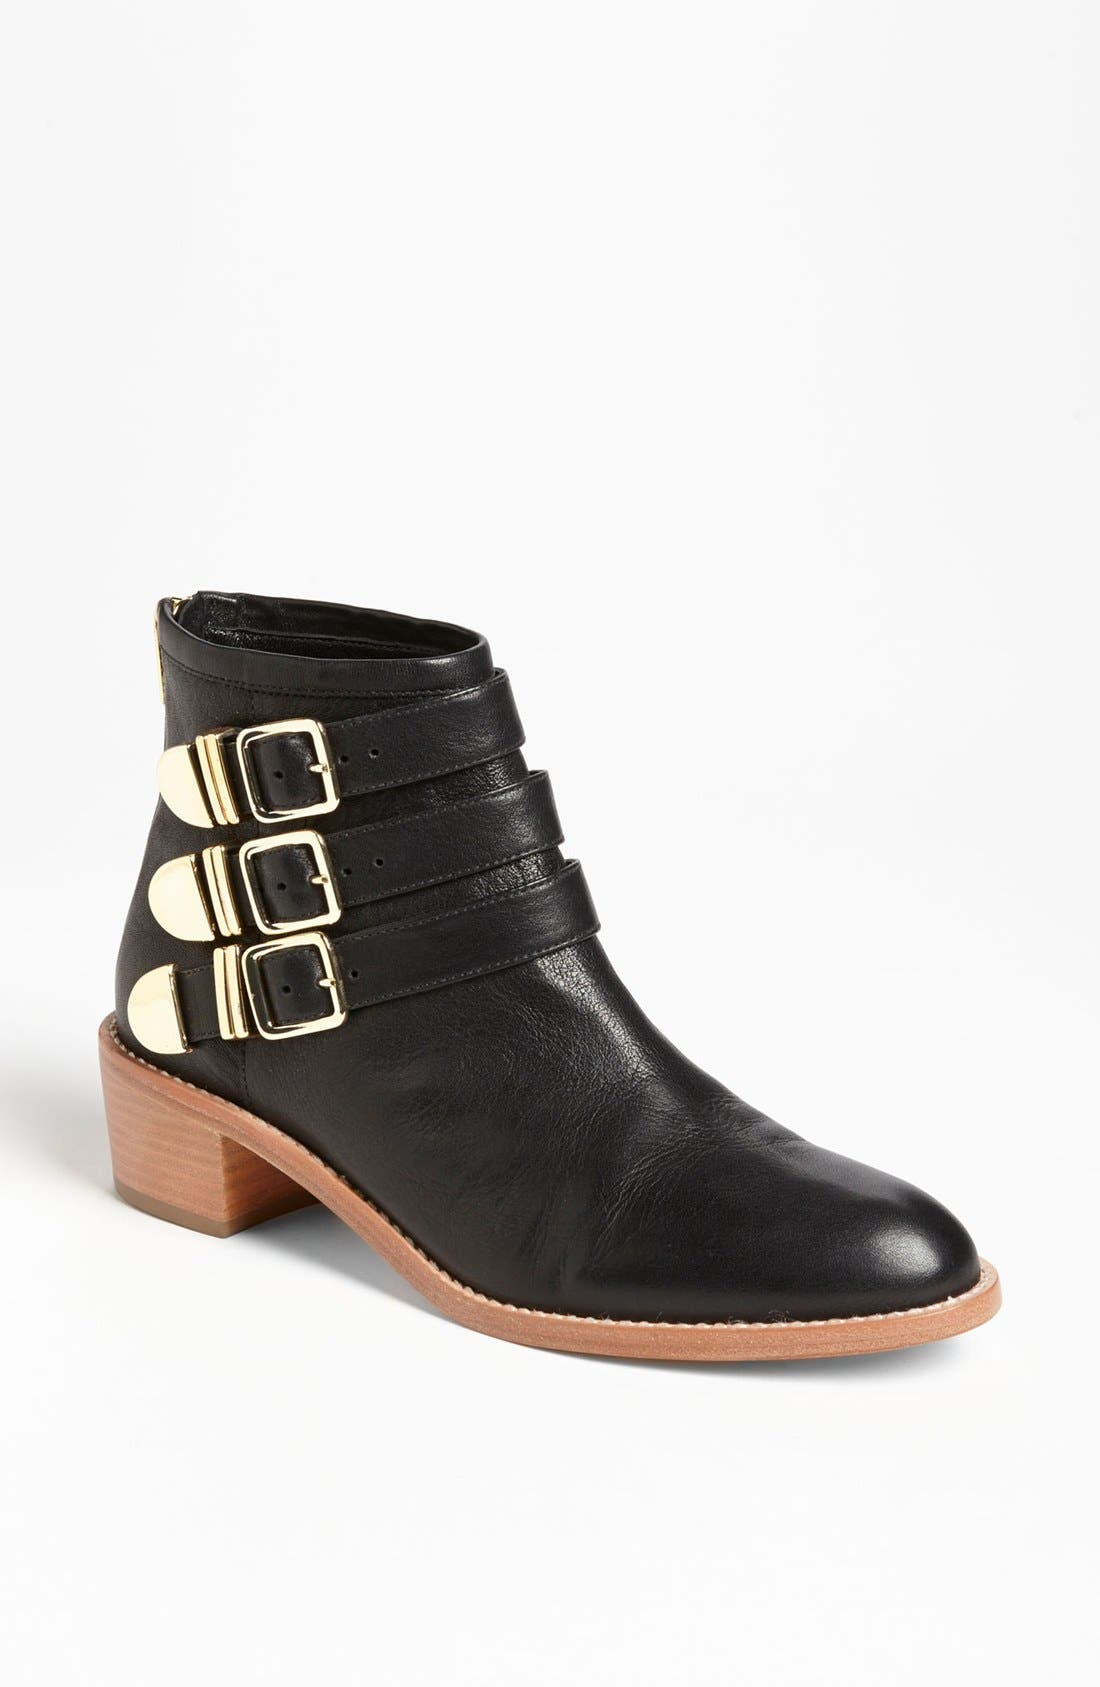 Alternate Image 1 Selected - Loeffler Randall 'Fenton' Boot (Online Only)